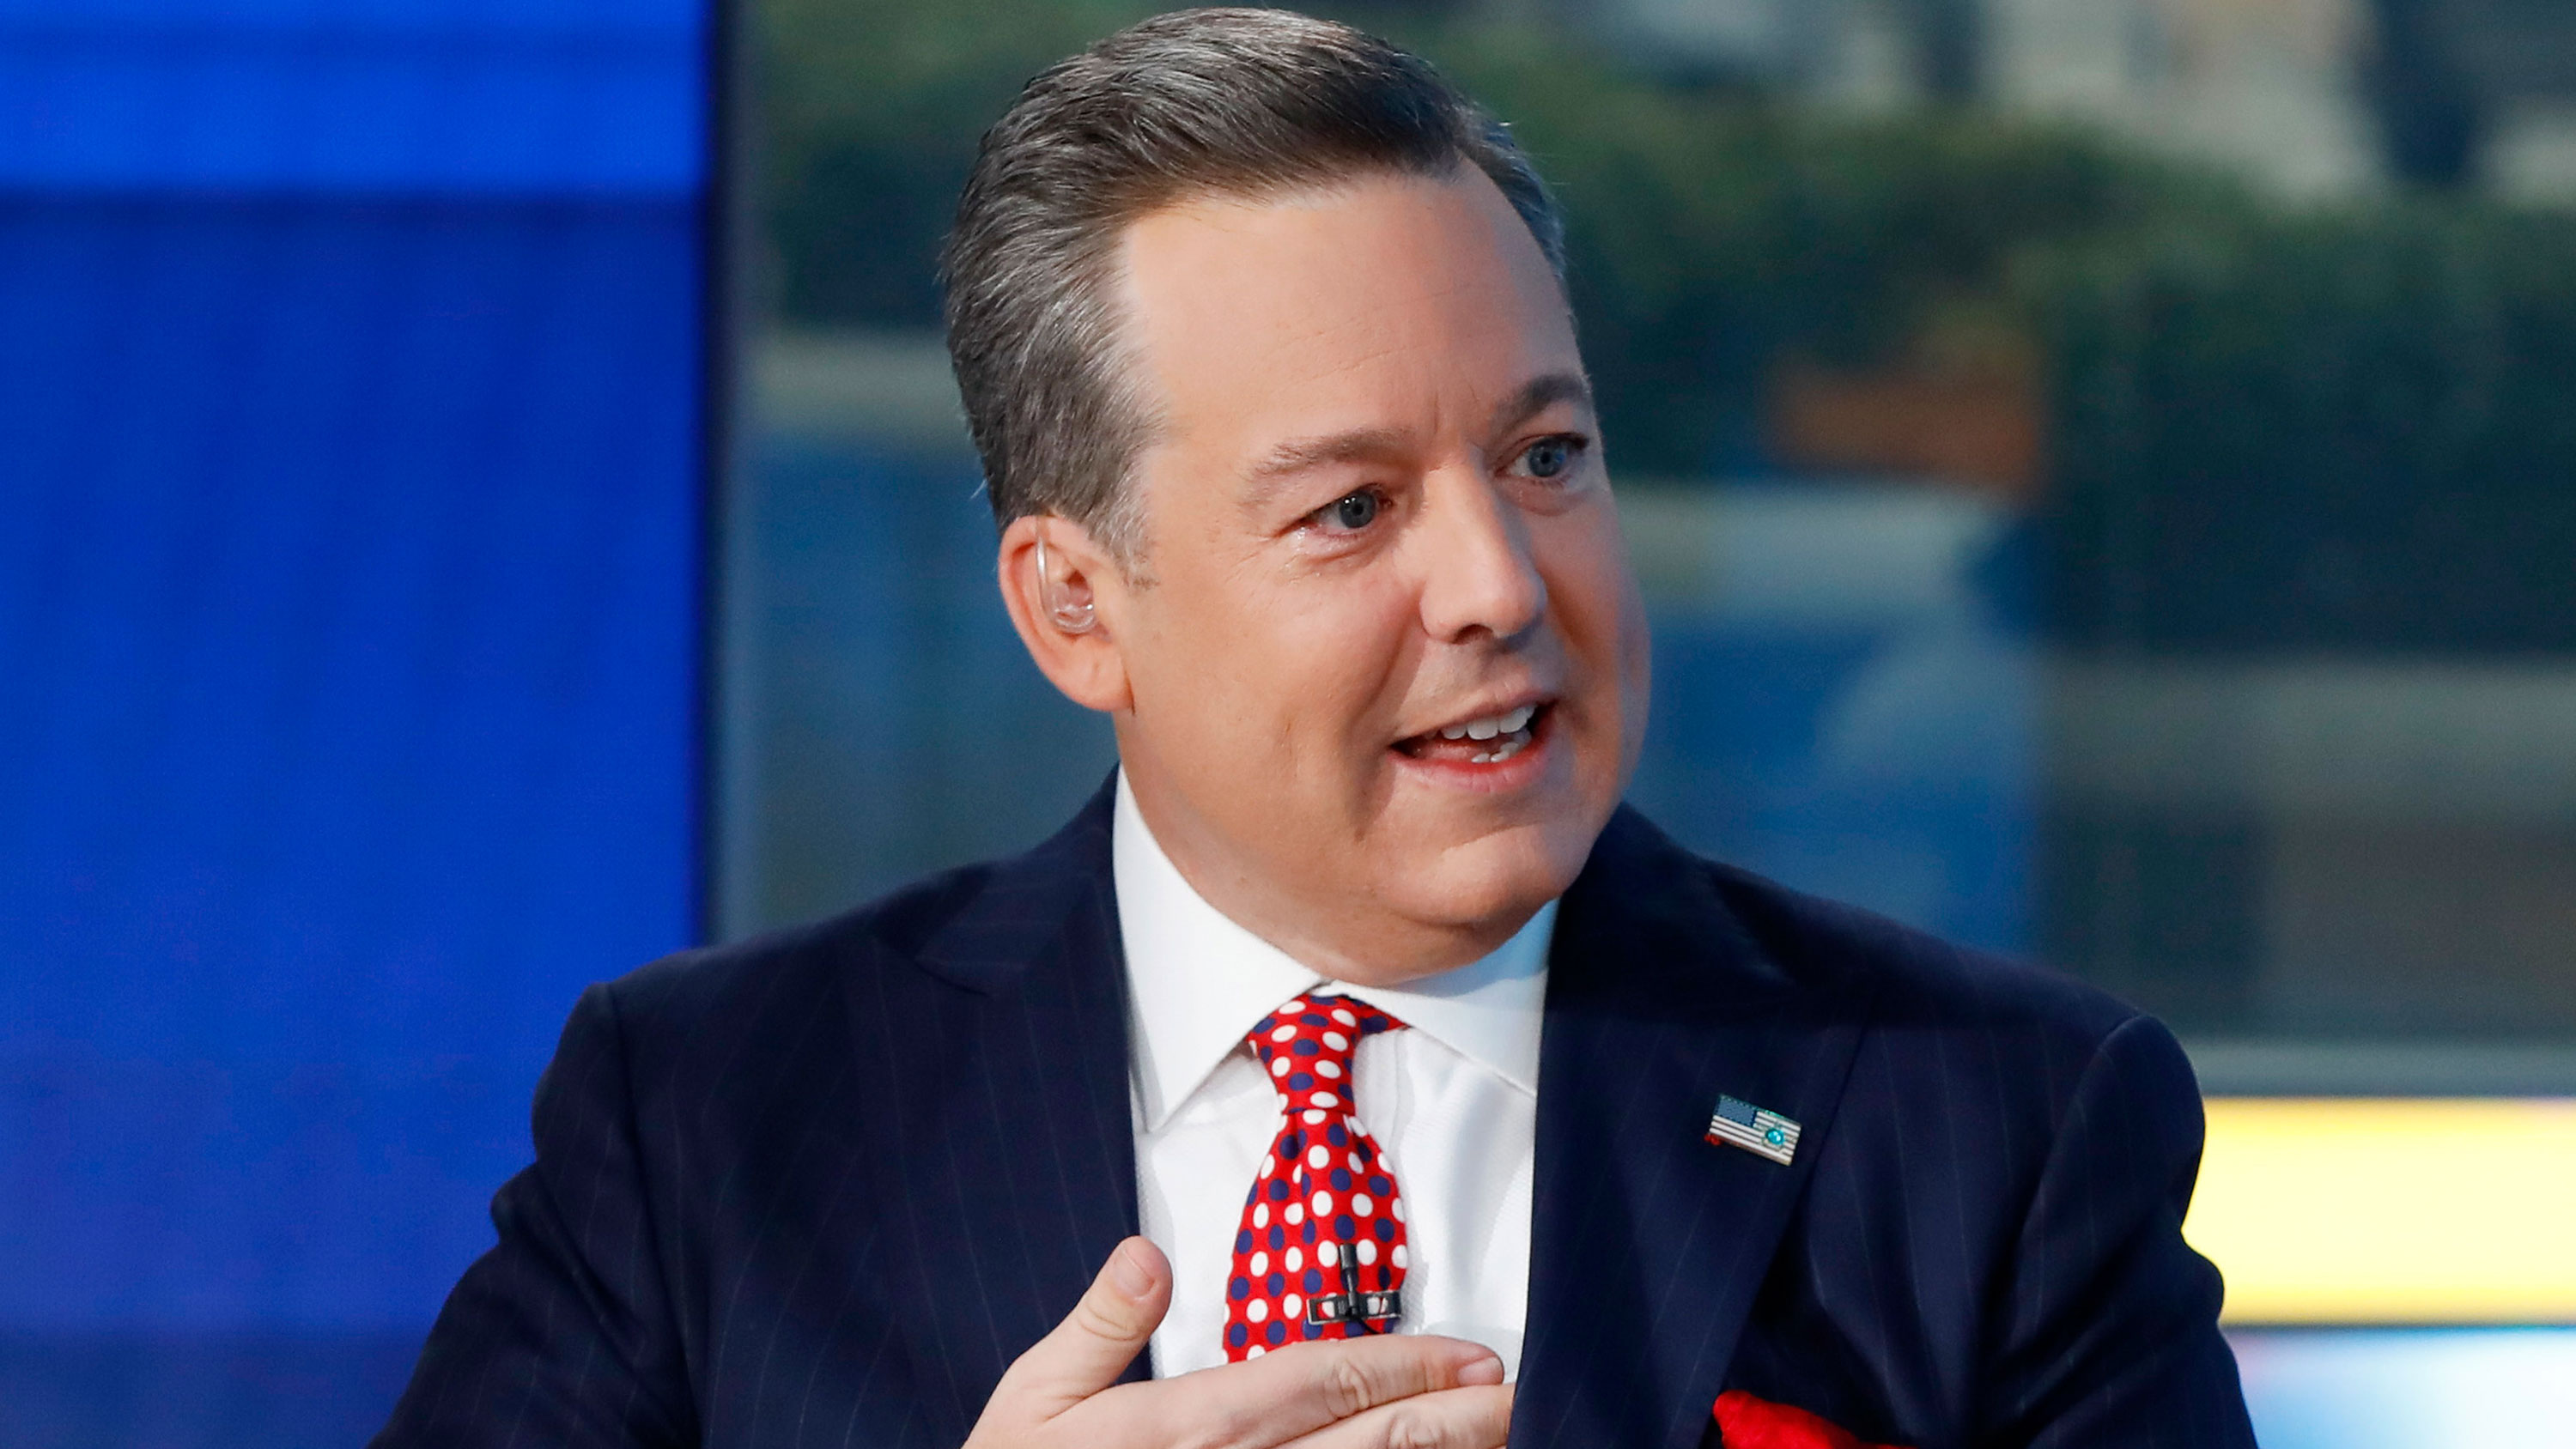 Fired Fox News host Ed Henry files defamation lawsuit against the network and its CEO